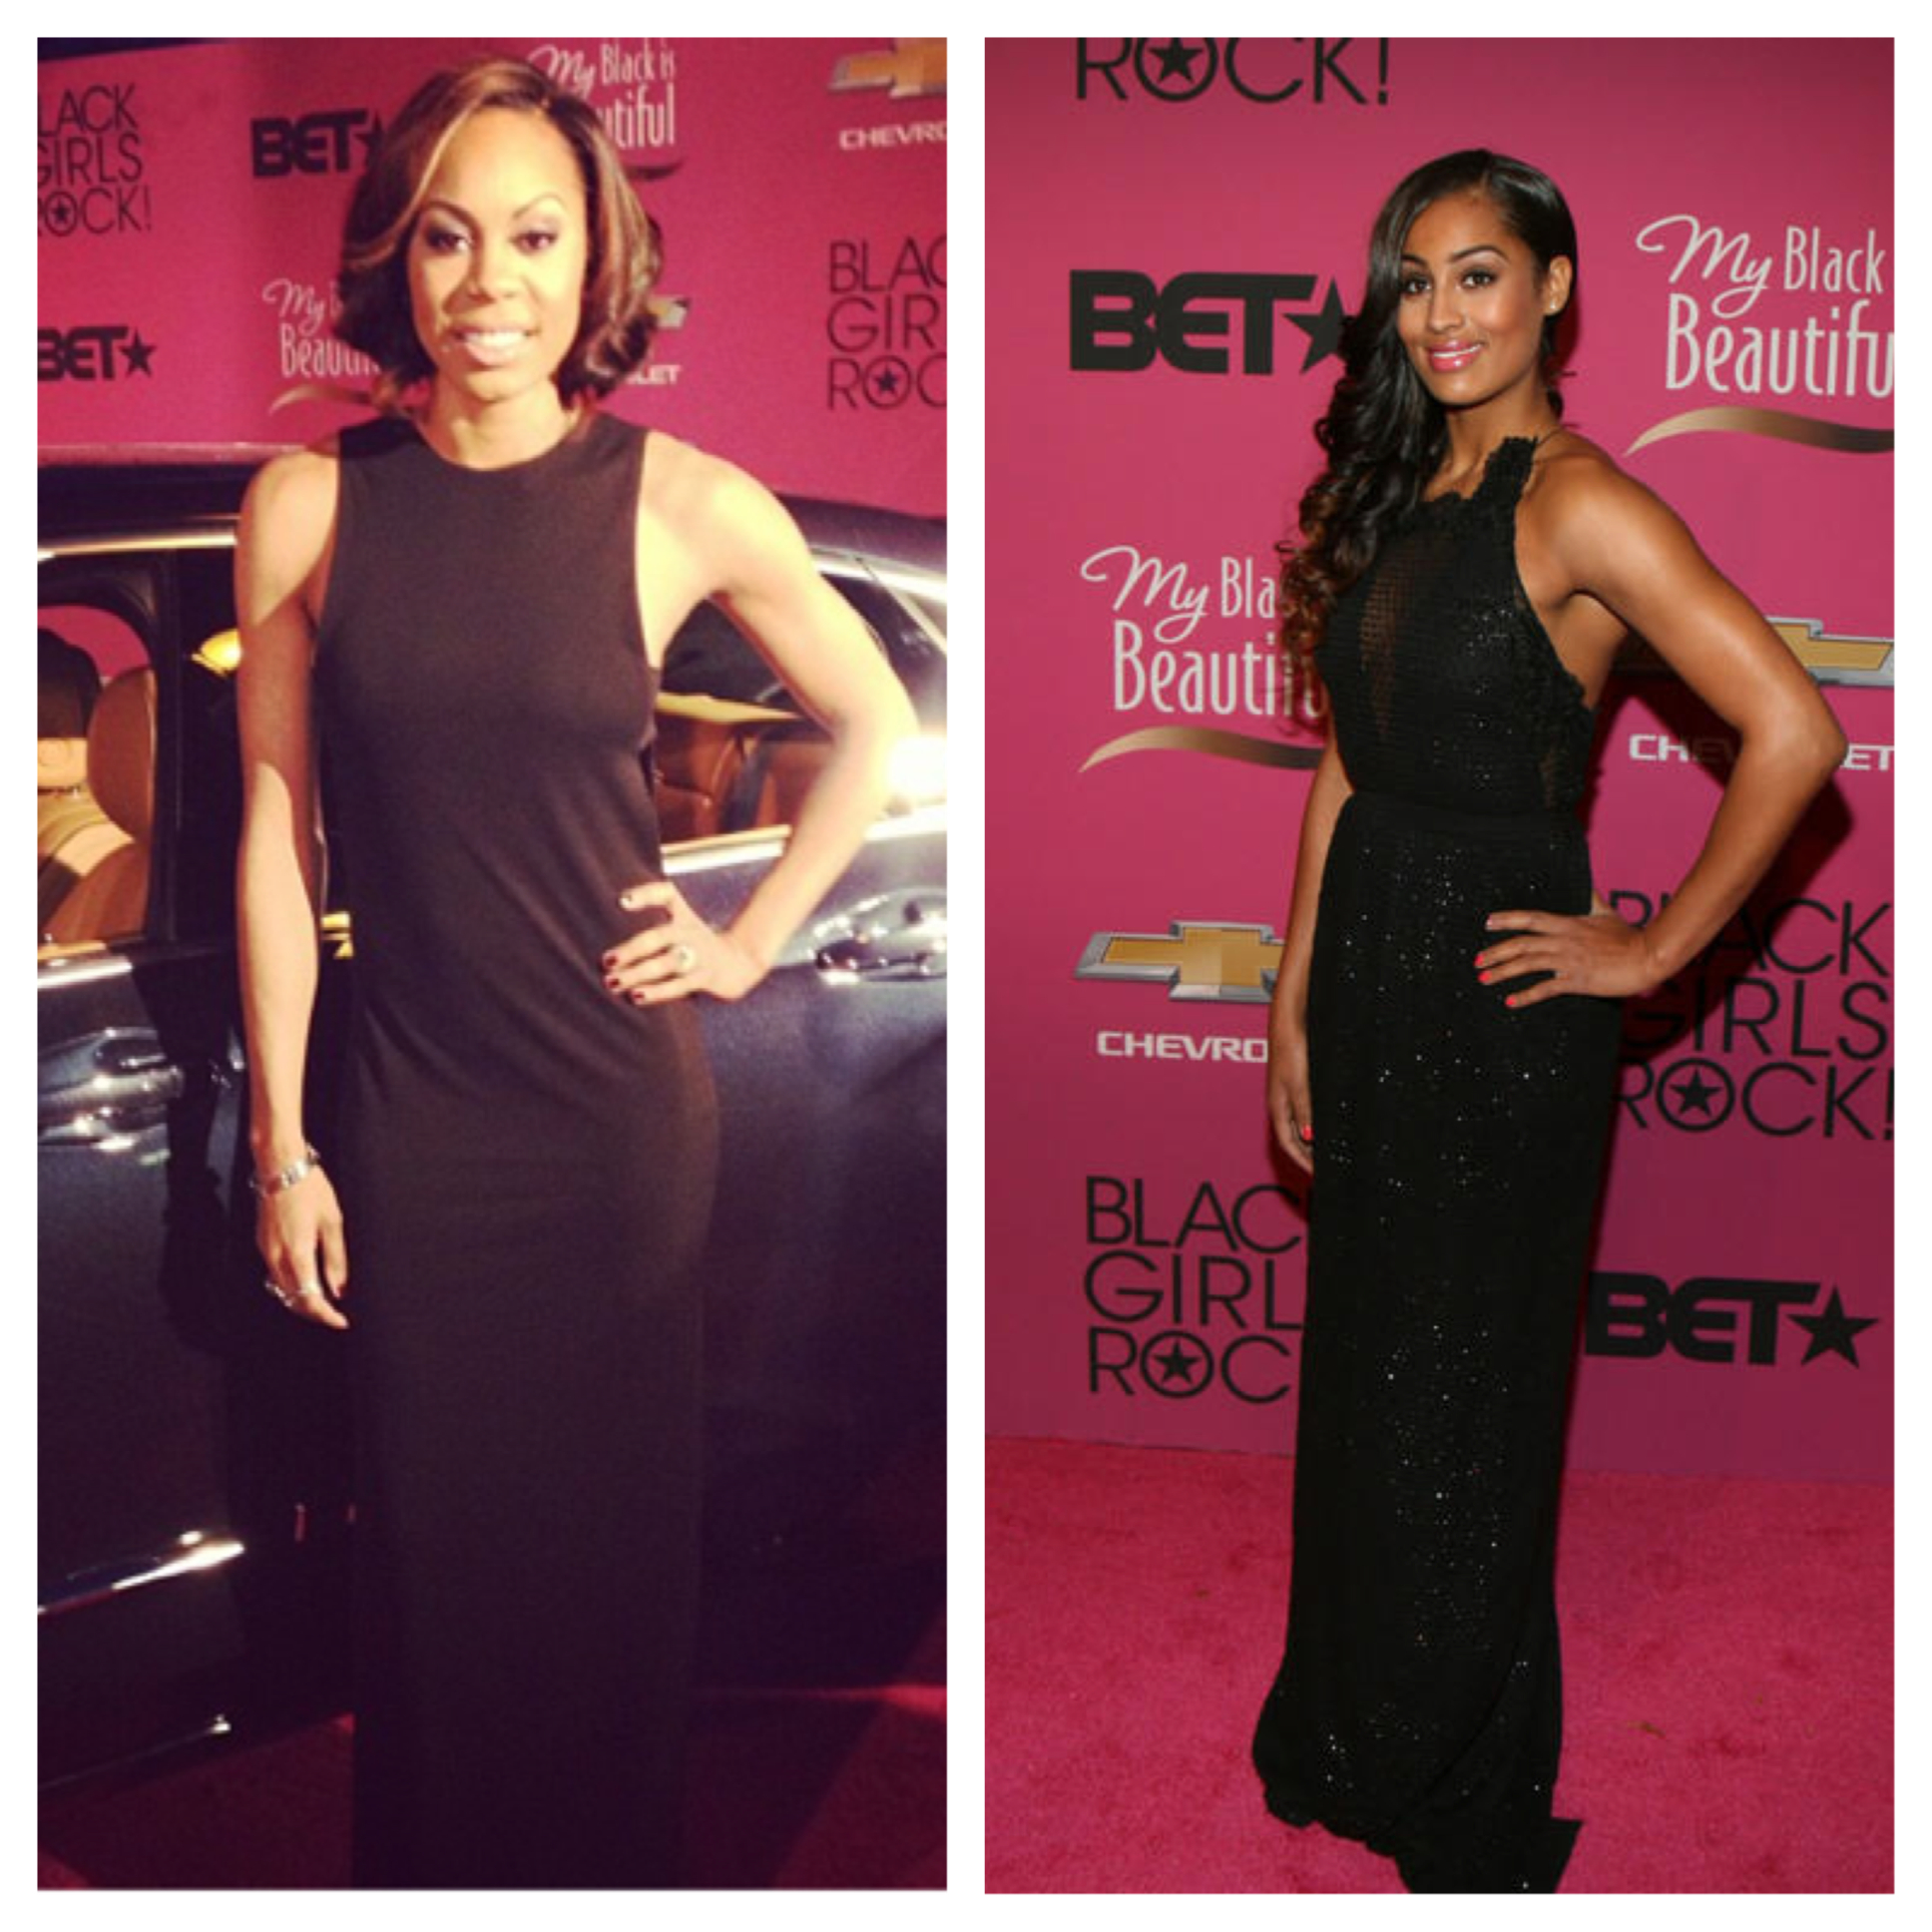 Sanya-Richards-Ross-Skylar-Diggins-2013-BET-Black-Girls-Rock-Awards